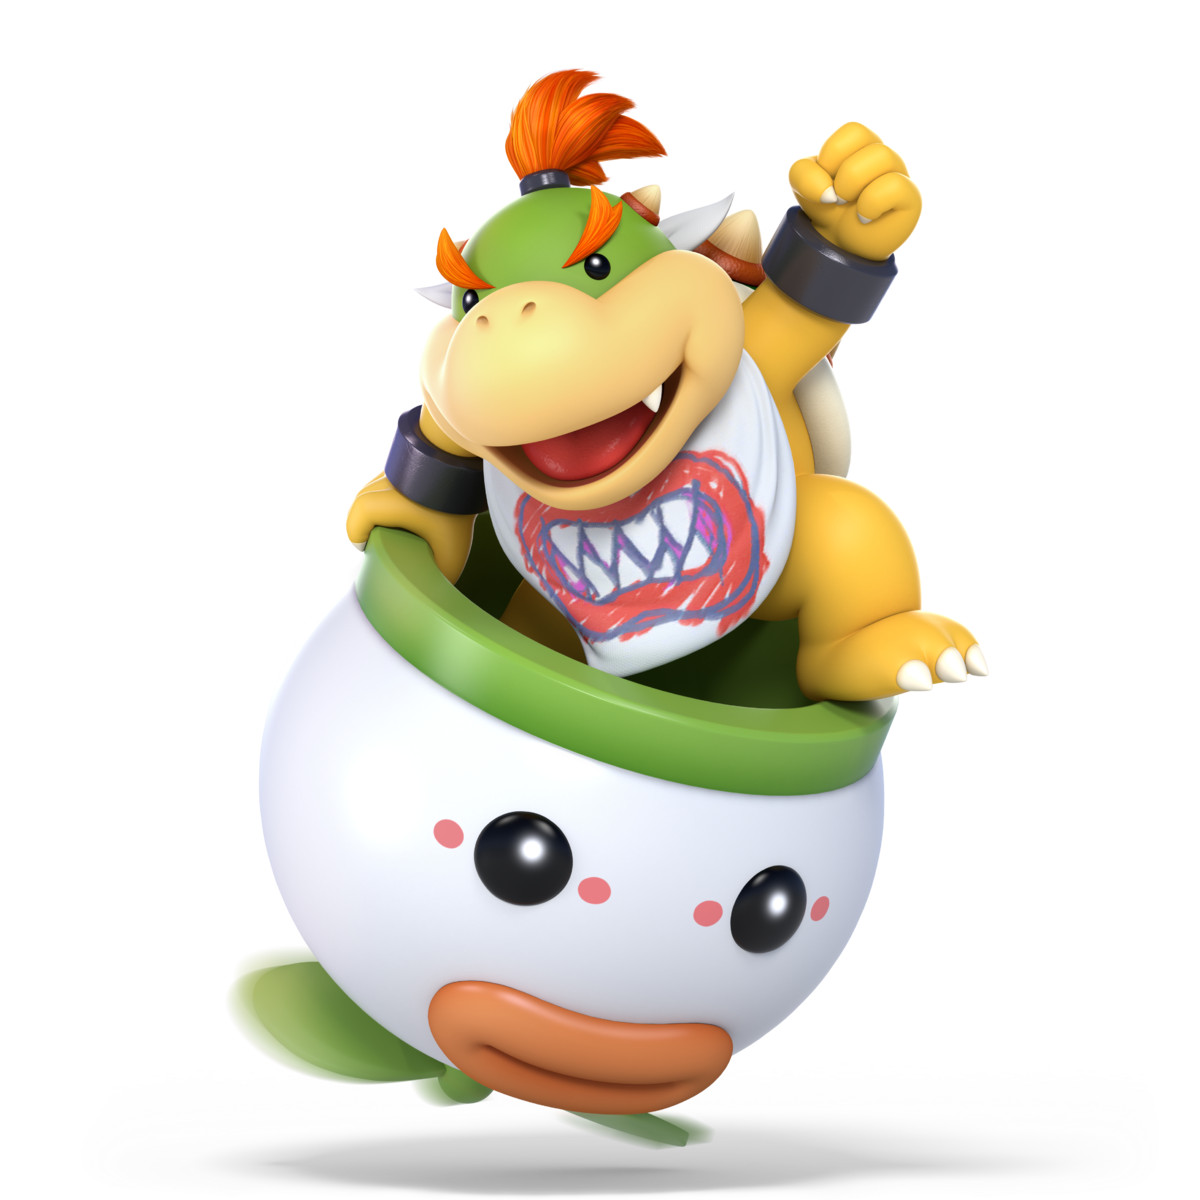 Bowser Jr. (SSBU) - SmashWiki, the Super Smash Bros. wiki on kano world map, nintendo world map, ventus world map, kirby world map, super mario galaxy world map, mushroom world map, dracula world map, shadow the hedgehog world map, super mario kart world map, raphael world map, sly cooper world map,